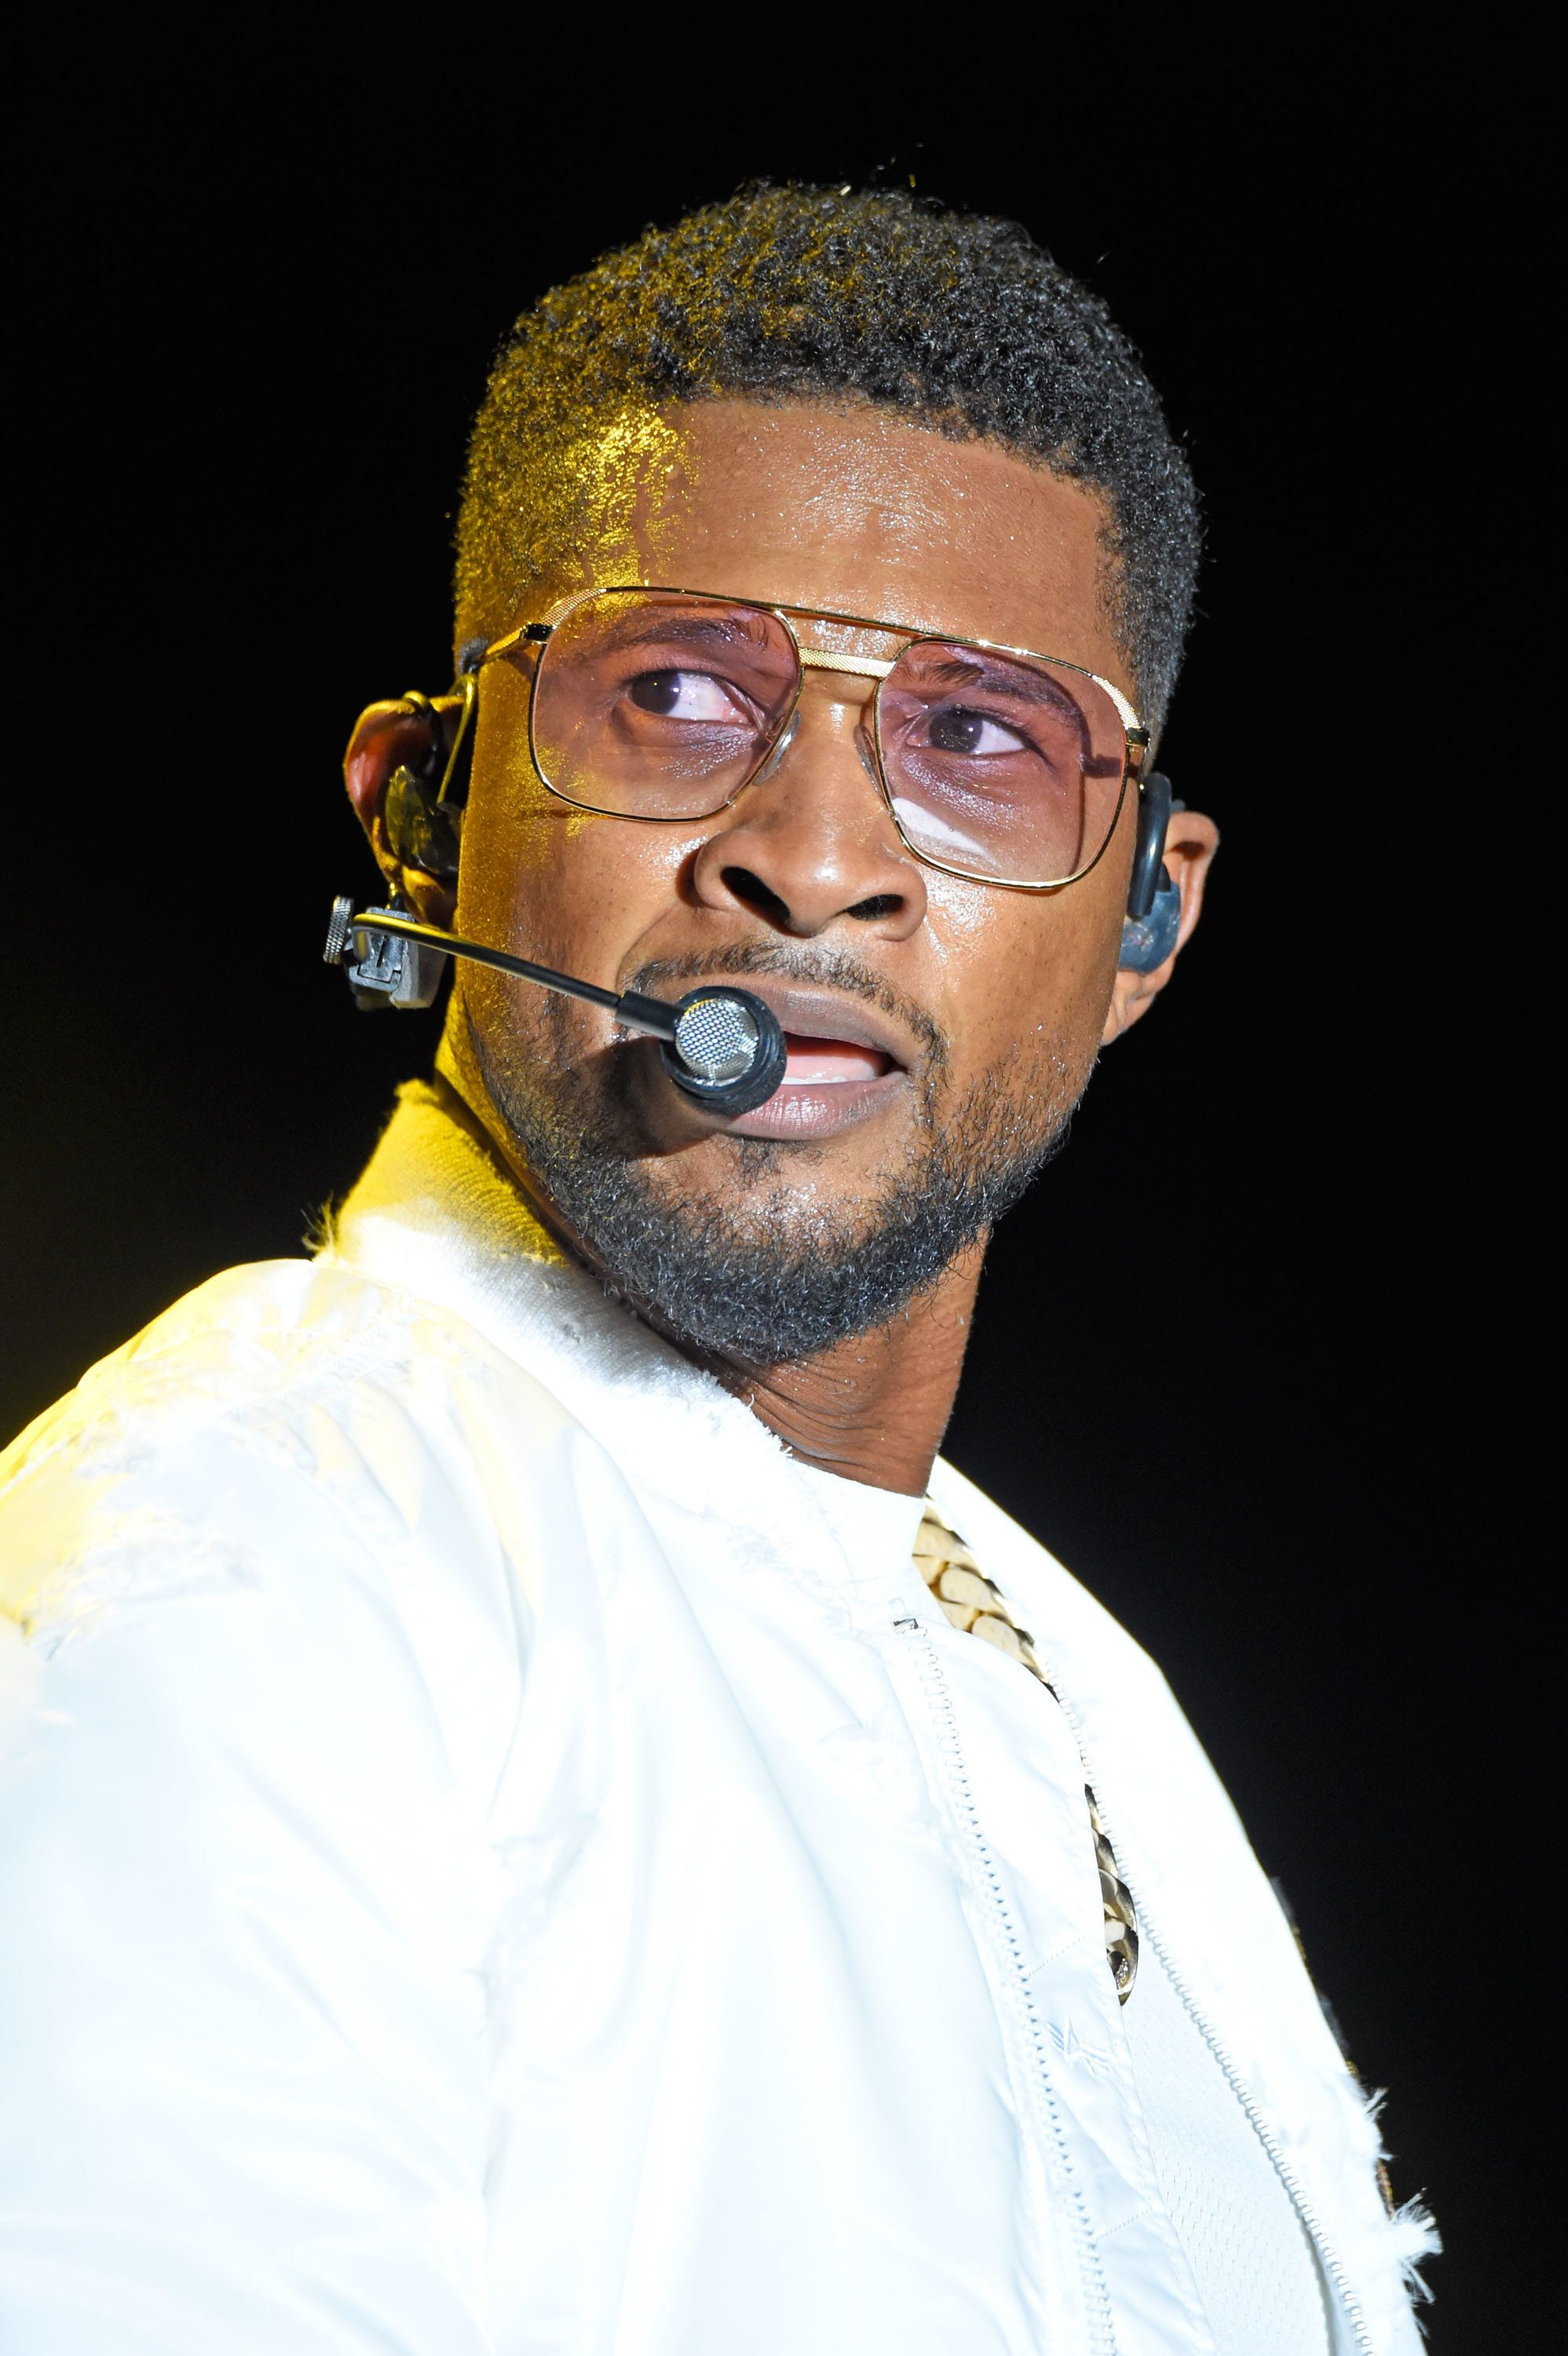 CINCINNATI, OH - JULY 29:  Usher  performs during the 2017 Cincinnati Music Festival at Paul Brown Stadium on July 29, 2017 in Cincinnati, Ohio.  (Photo by Stephen J. Cohen/Getty Images)